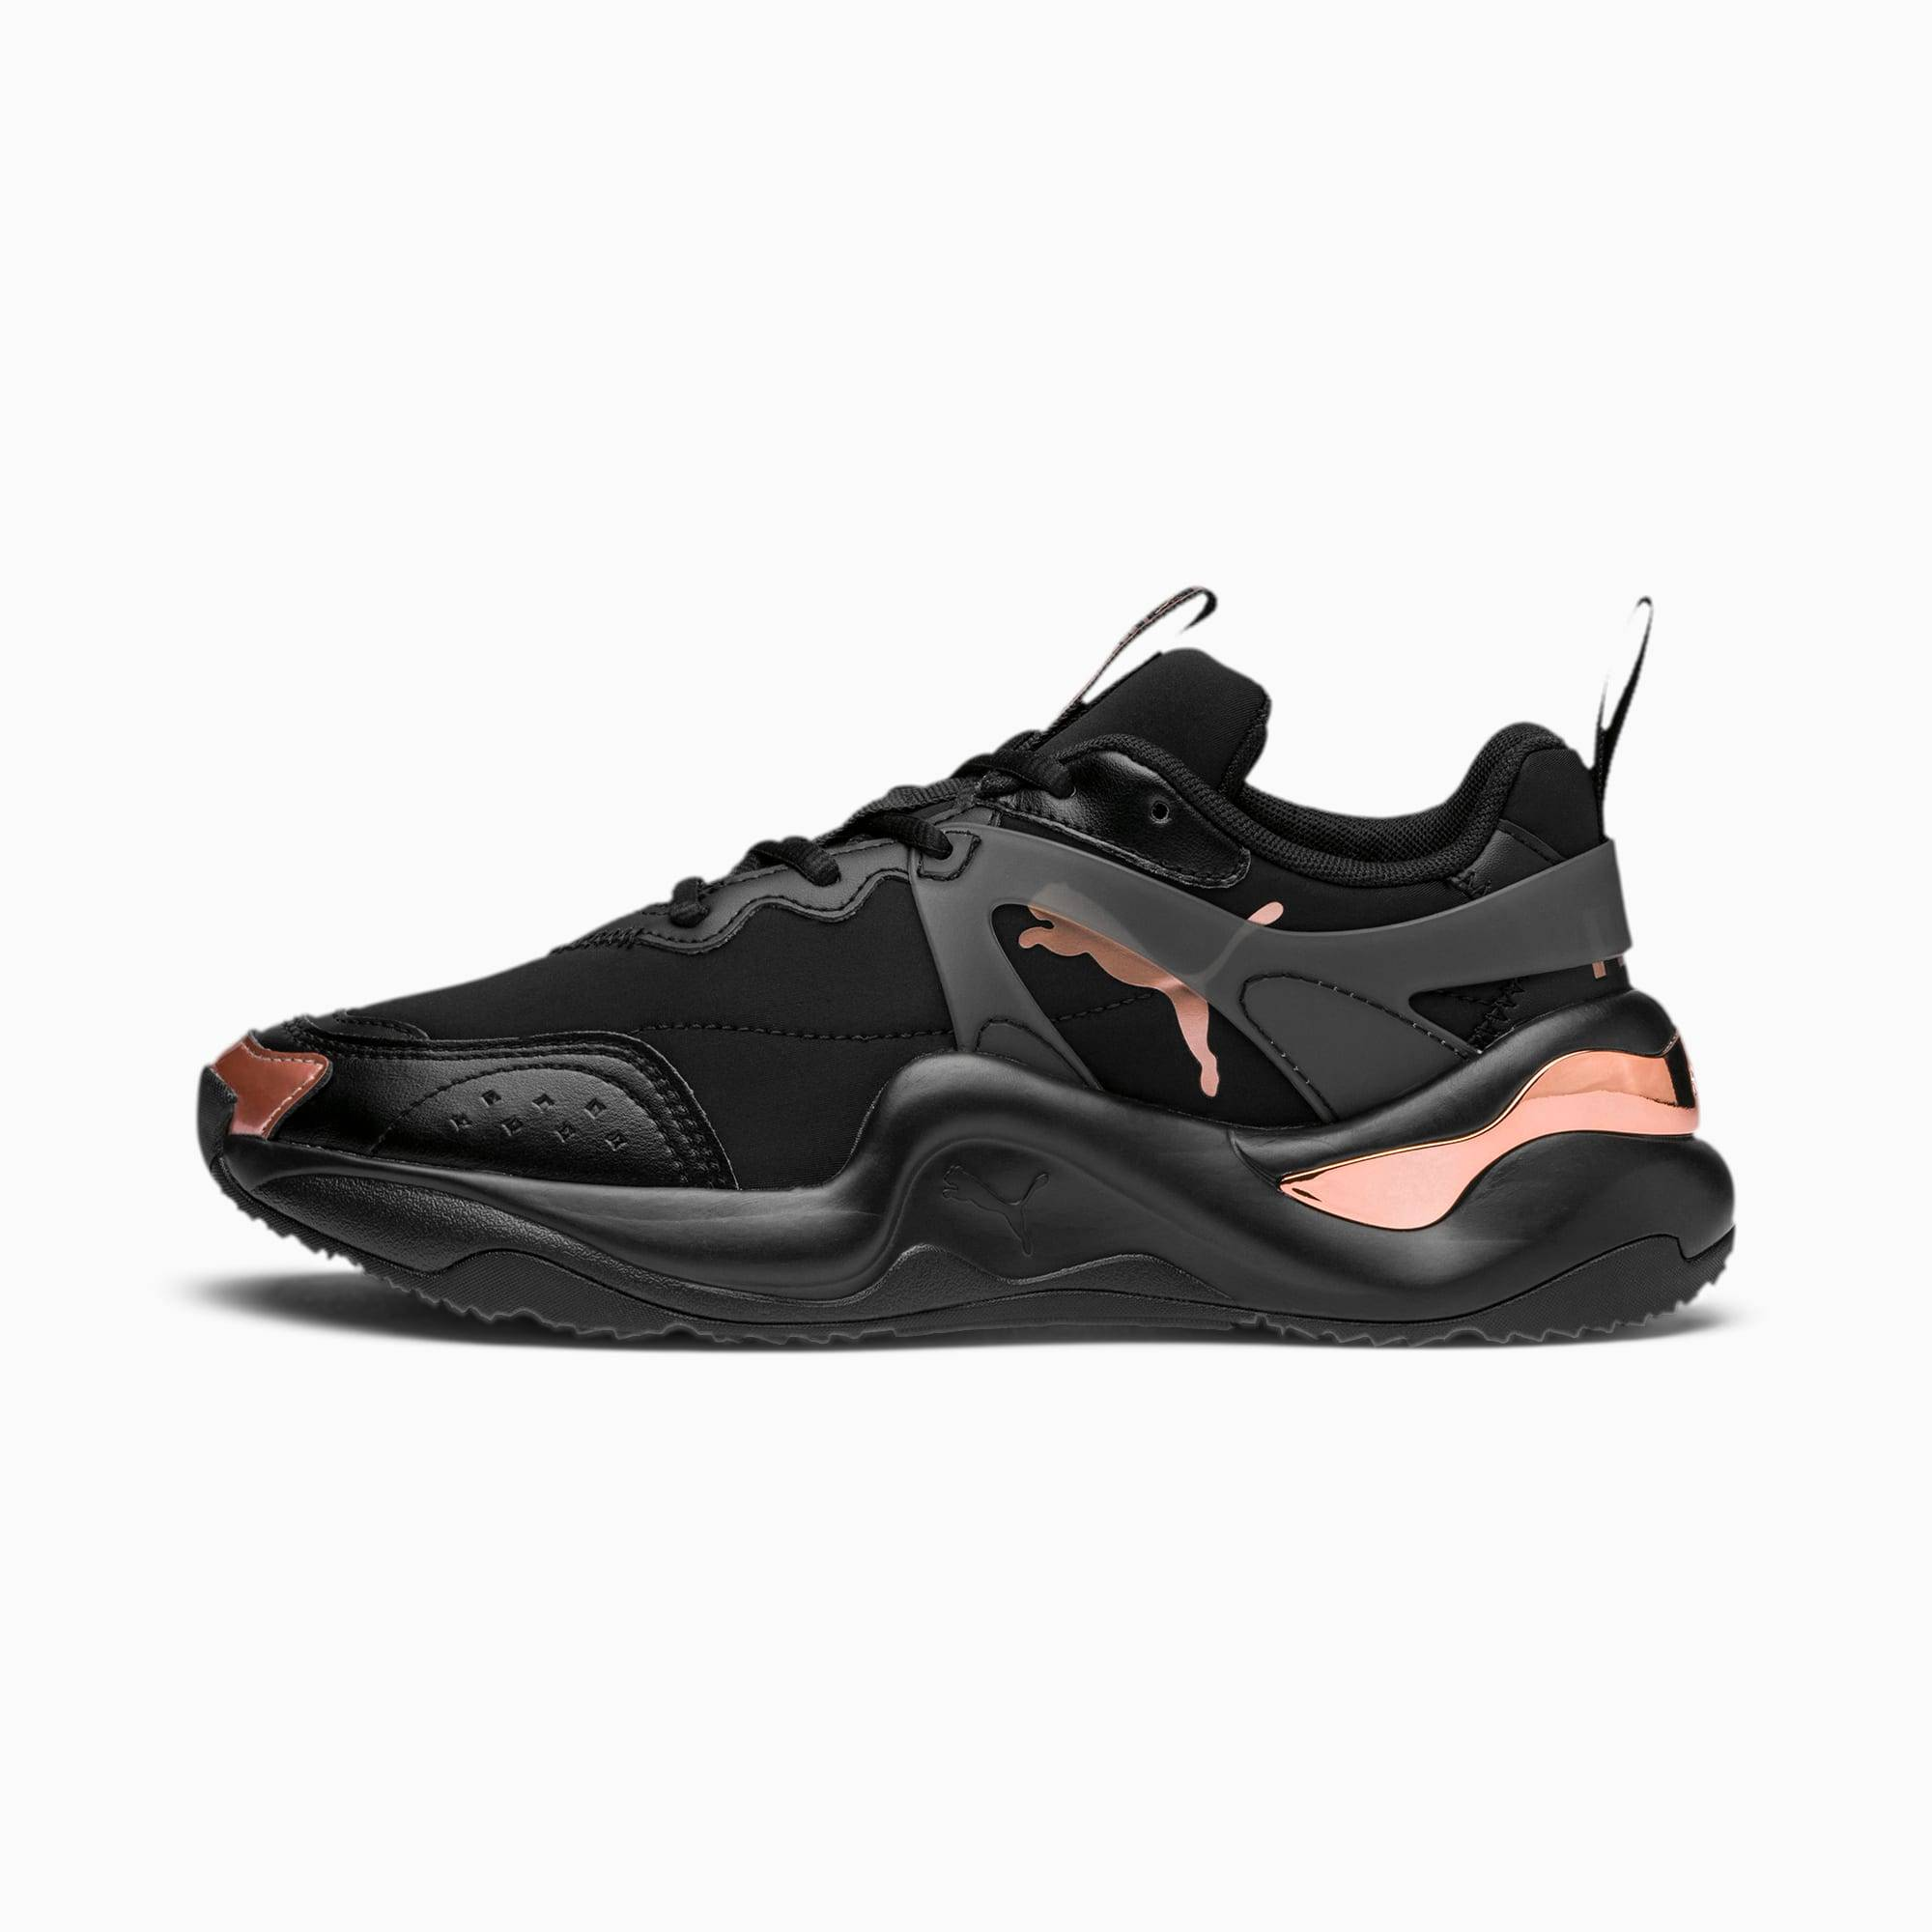 PUMA Chaussure Basket Rise Neoprene pour Femme, Or/Rose/Noir, Taille 40.5, Chaussures